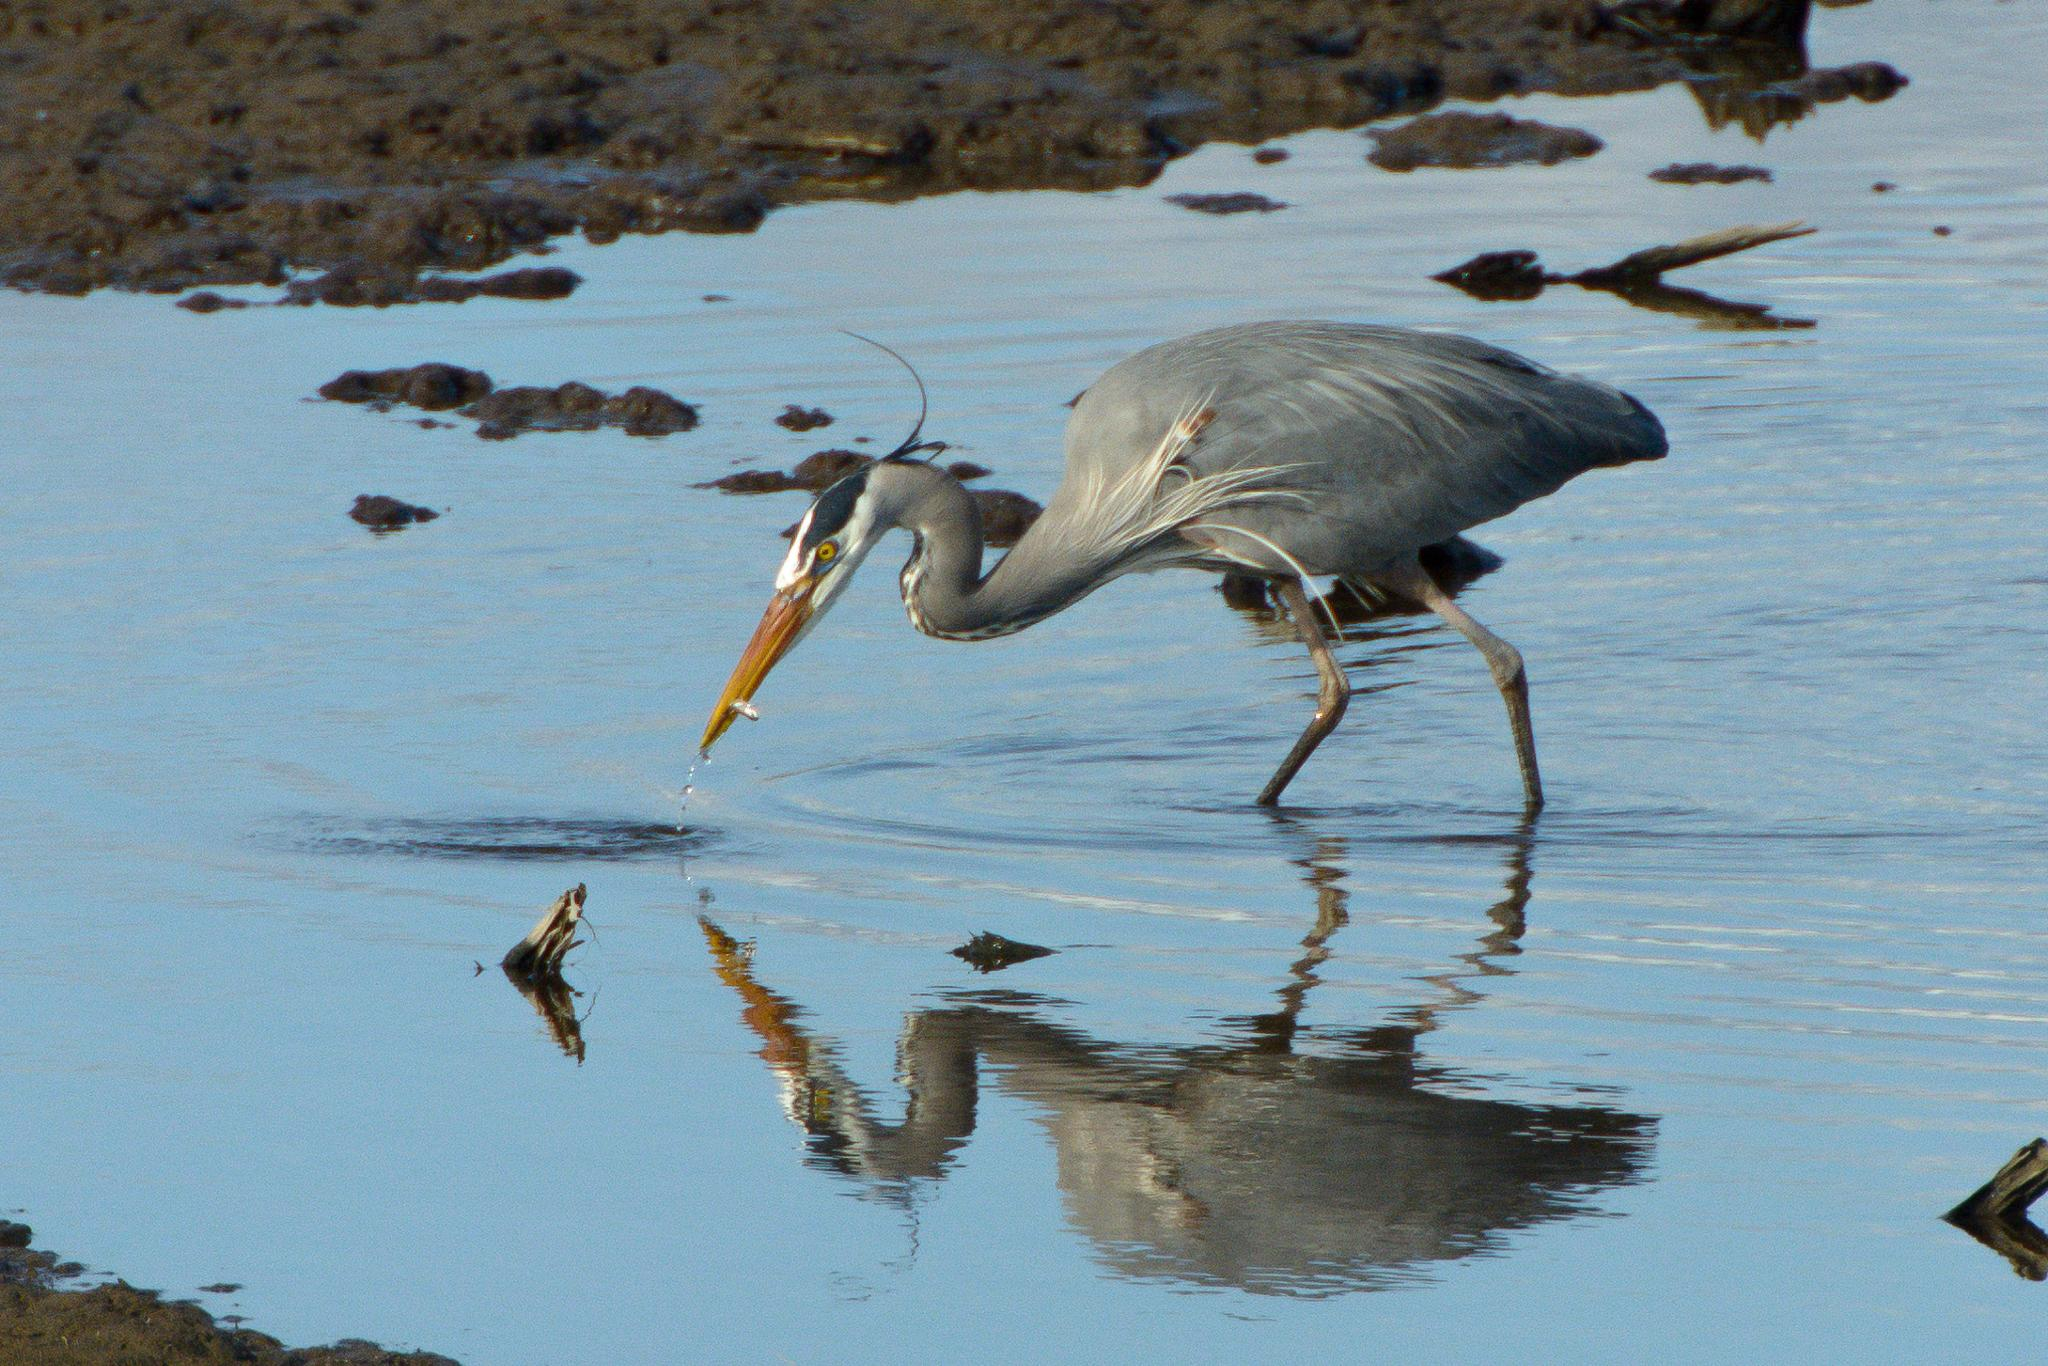 Blue Heron having a snack by Jeff Tostenrude